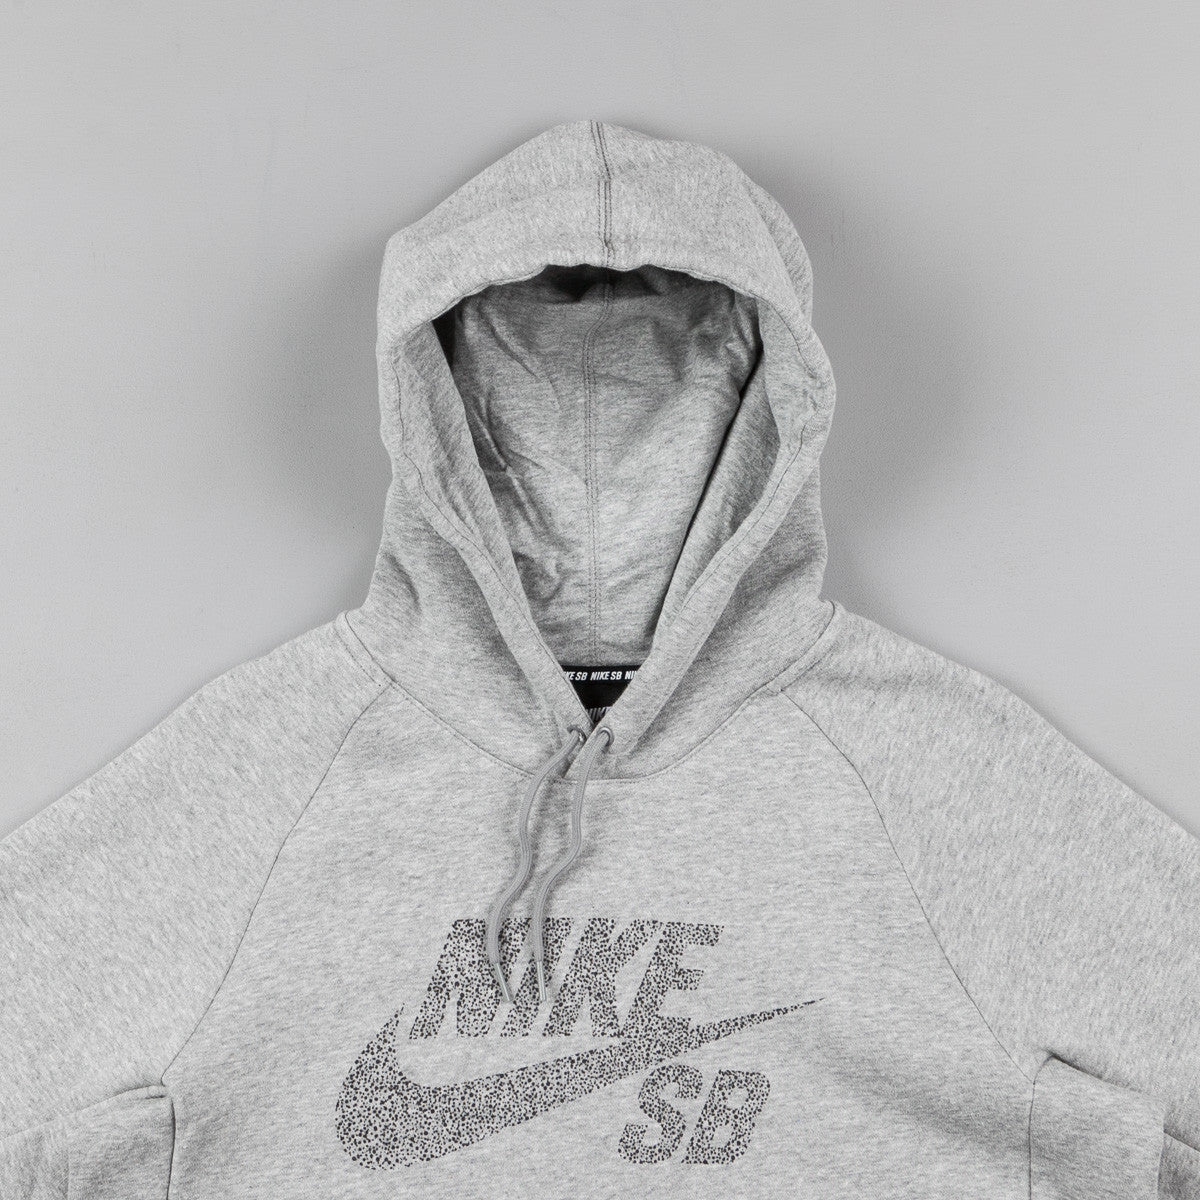 nike air max trainer 1 édition limitée - Nike SB Icon Dots Pullover Hooded Sweatshirt - Dark Grey Heather ...